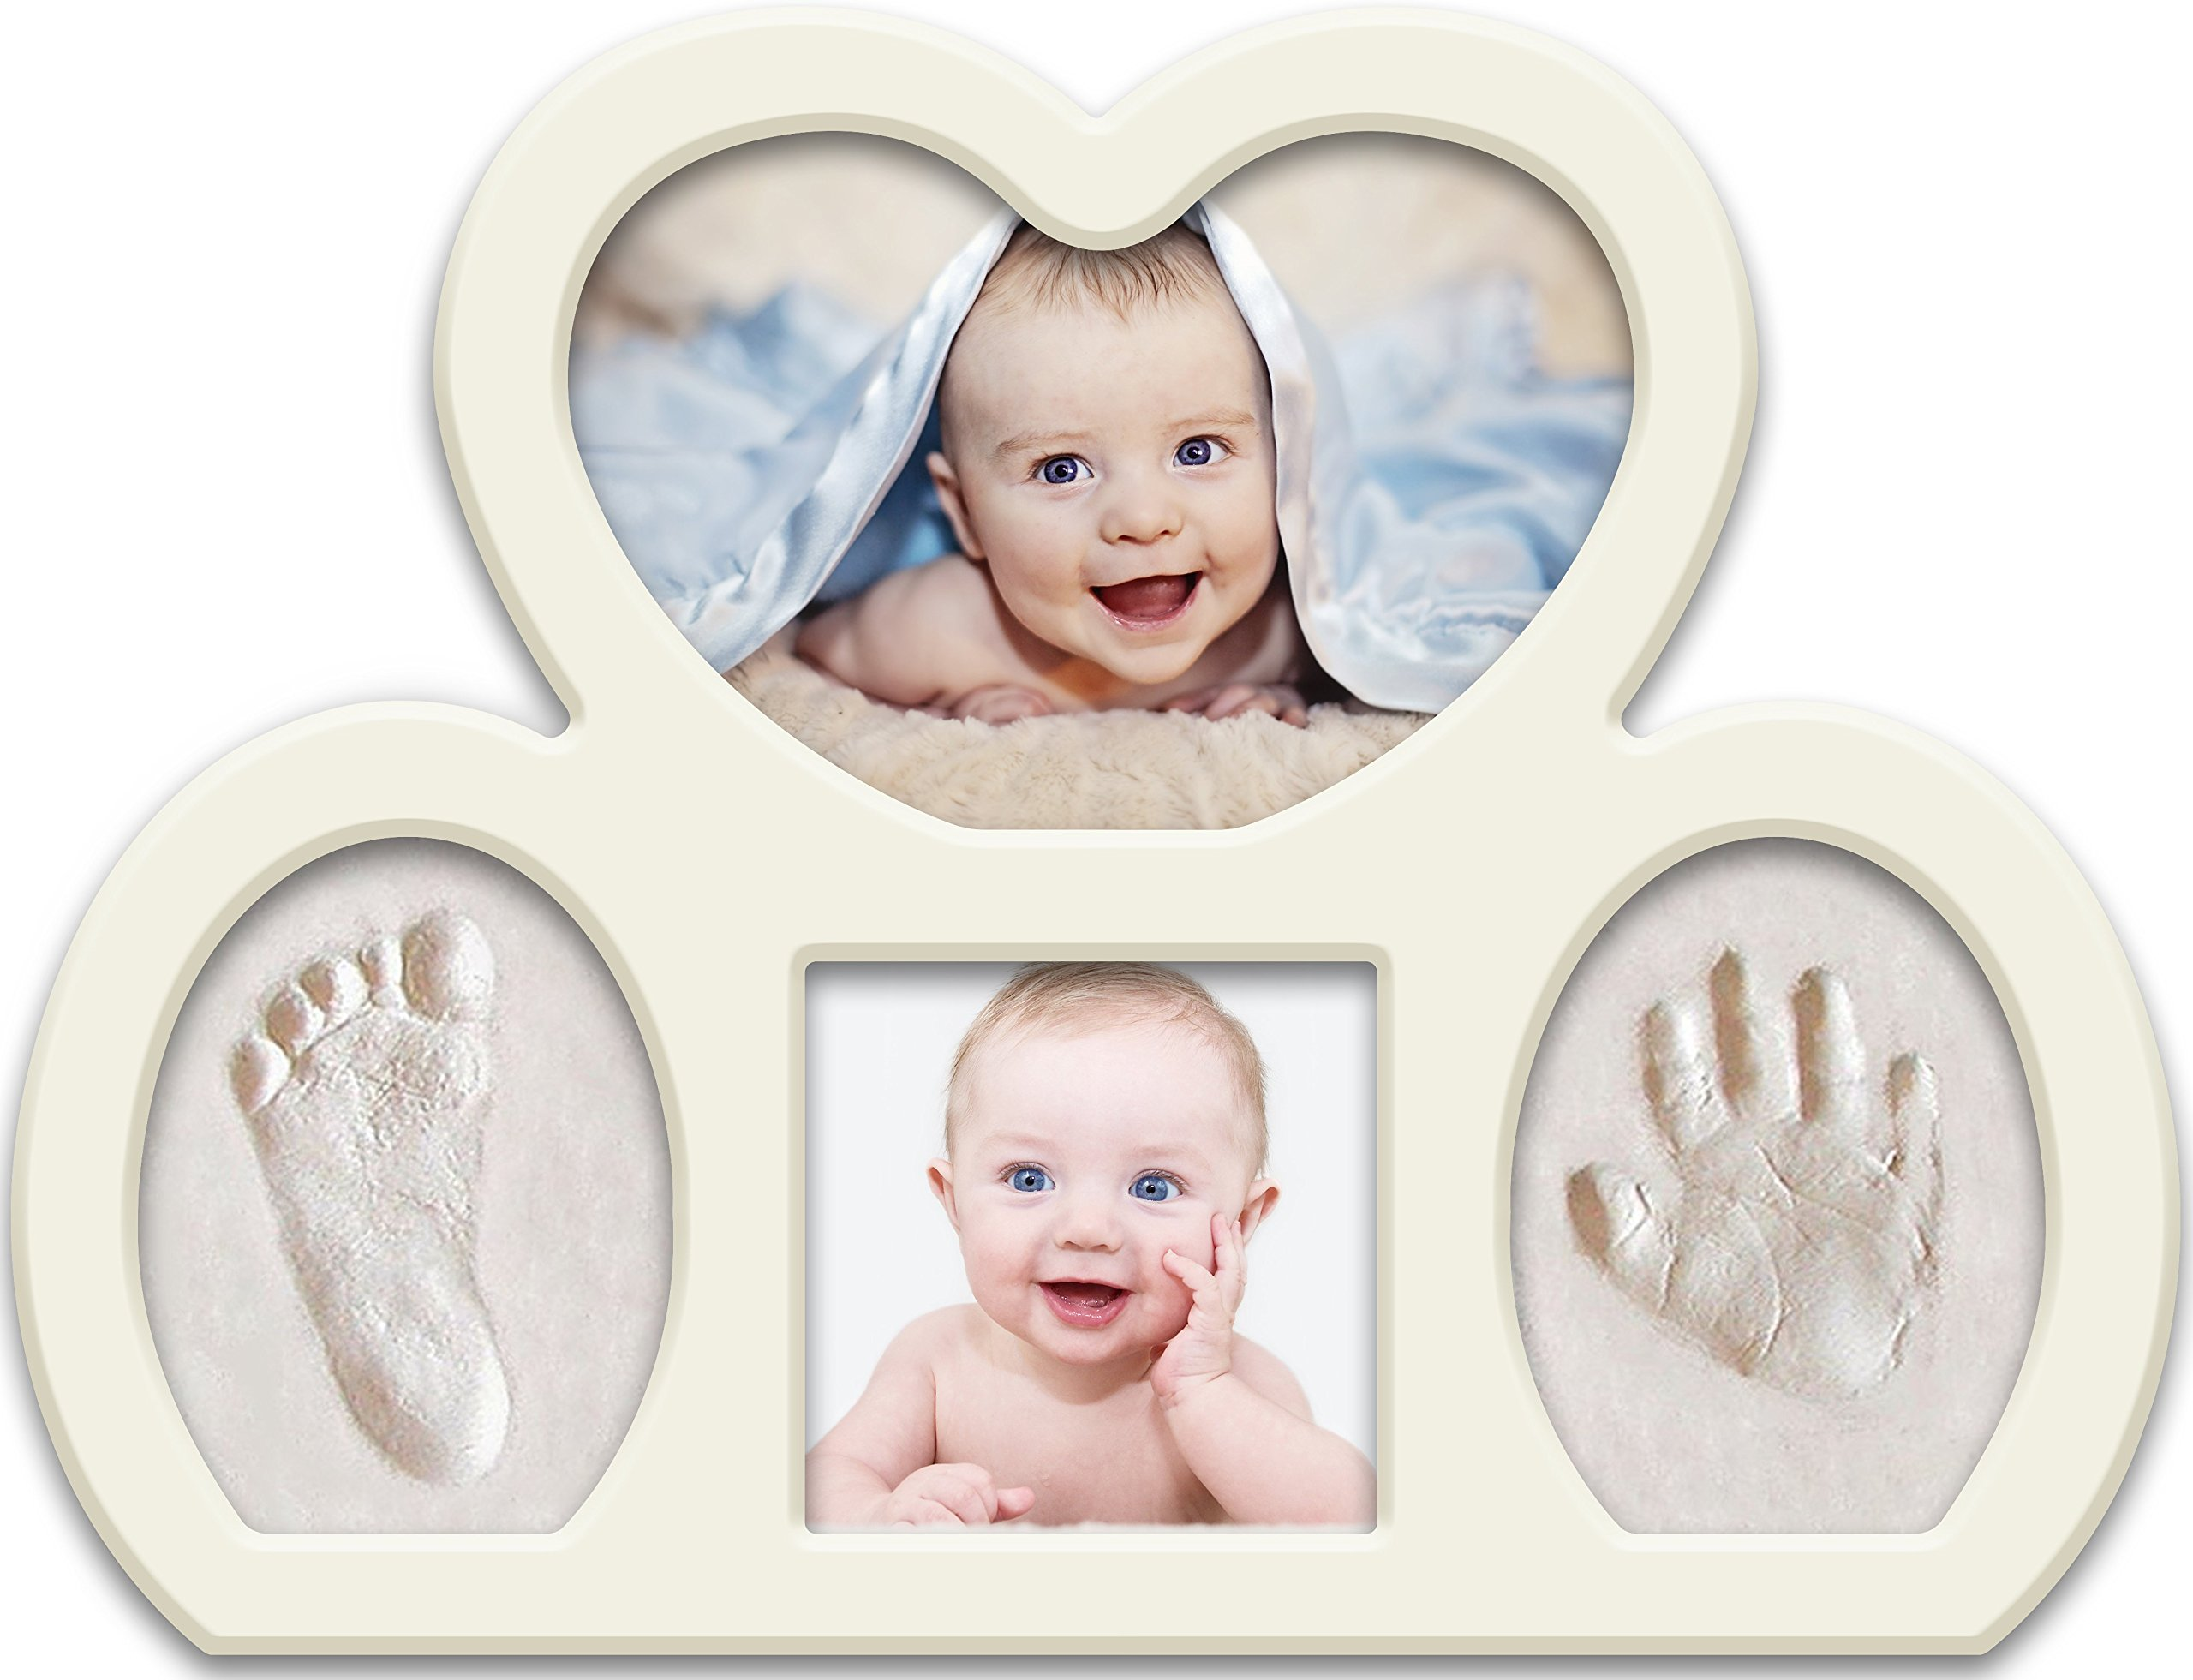 Newborn Babyprints Kit for Boys and Girls. Great Baby Shower Favor and Registry Idea. Baby Footprint and Handprint Photo Frame Keepsake. White